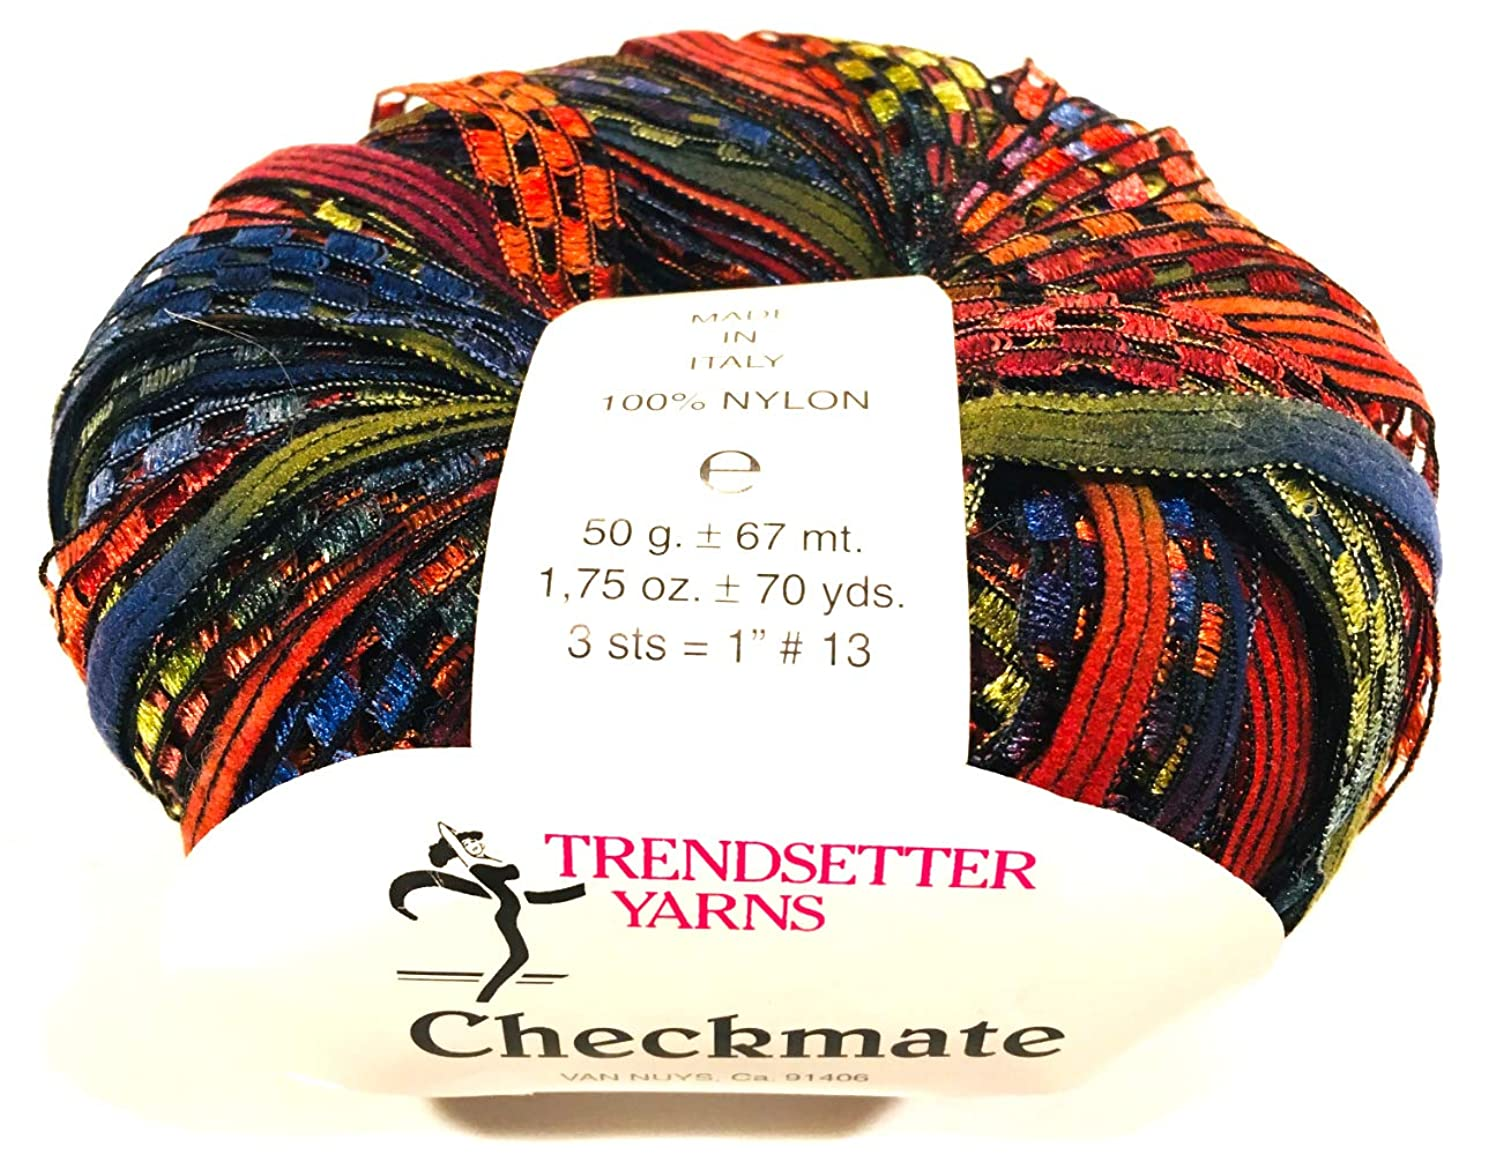 Checkmate 1040 Trendsetter Yarns 70 yds - Made in Italy